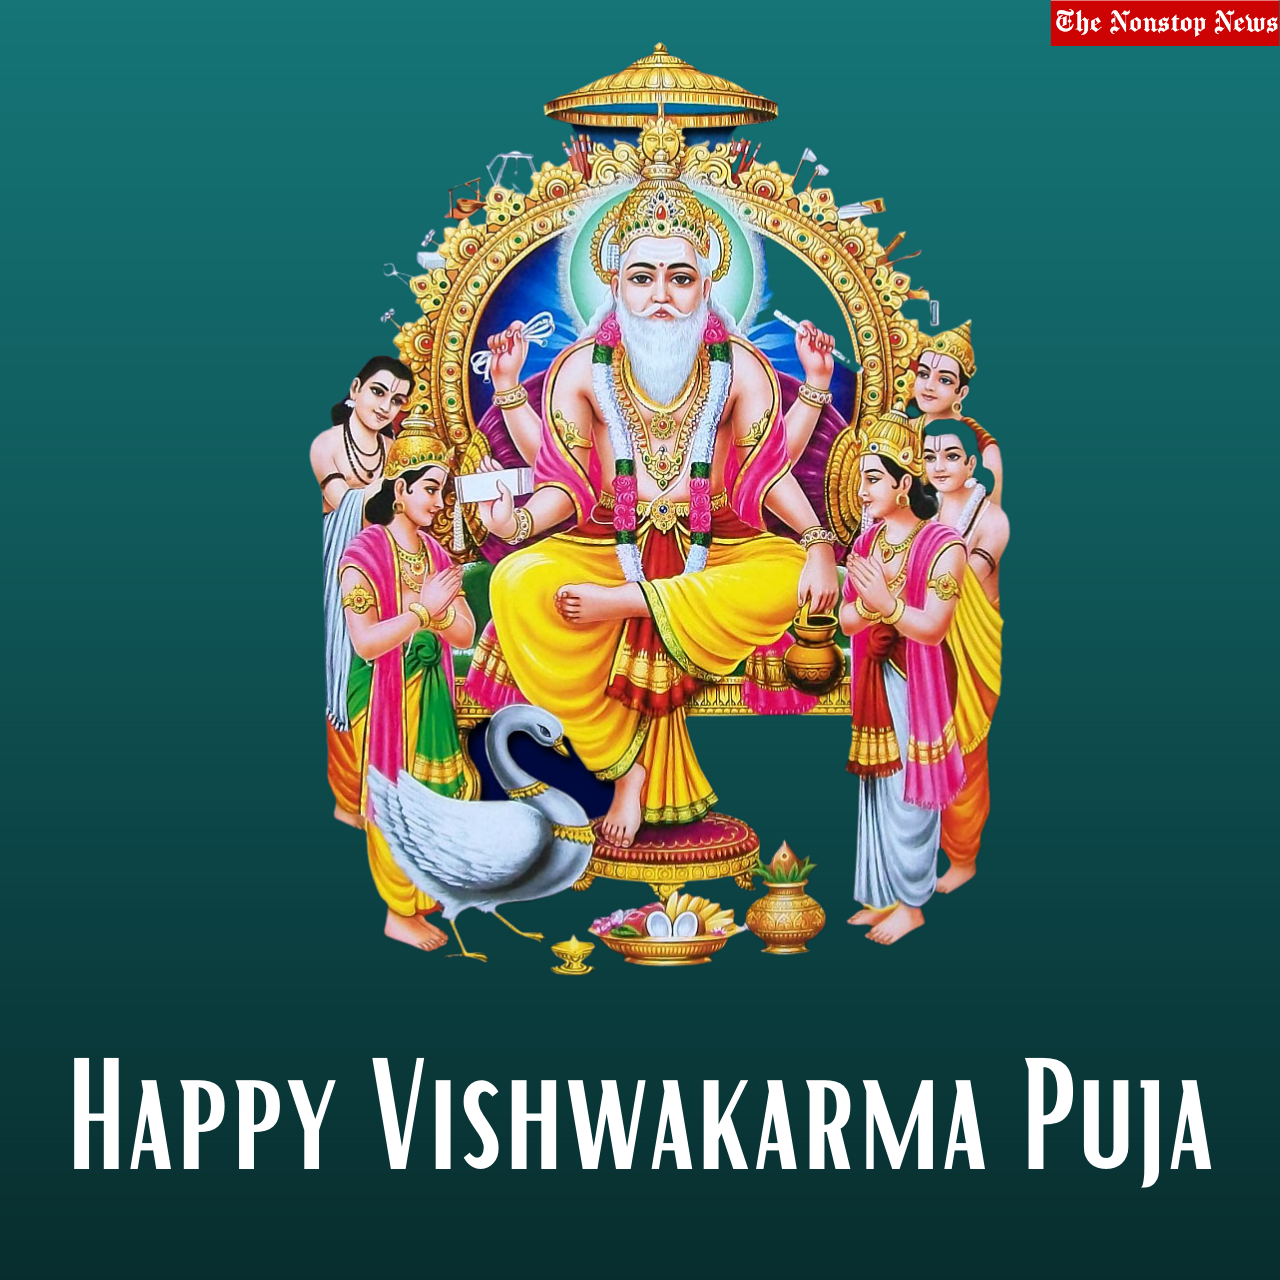 Vishwakarma Puja 2021 Wishes, Quotes, HD Images, Messages, and Greetings to Share